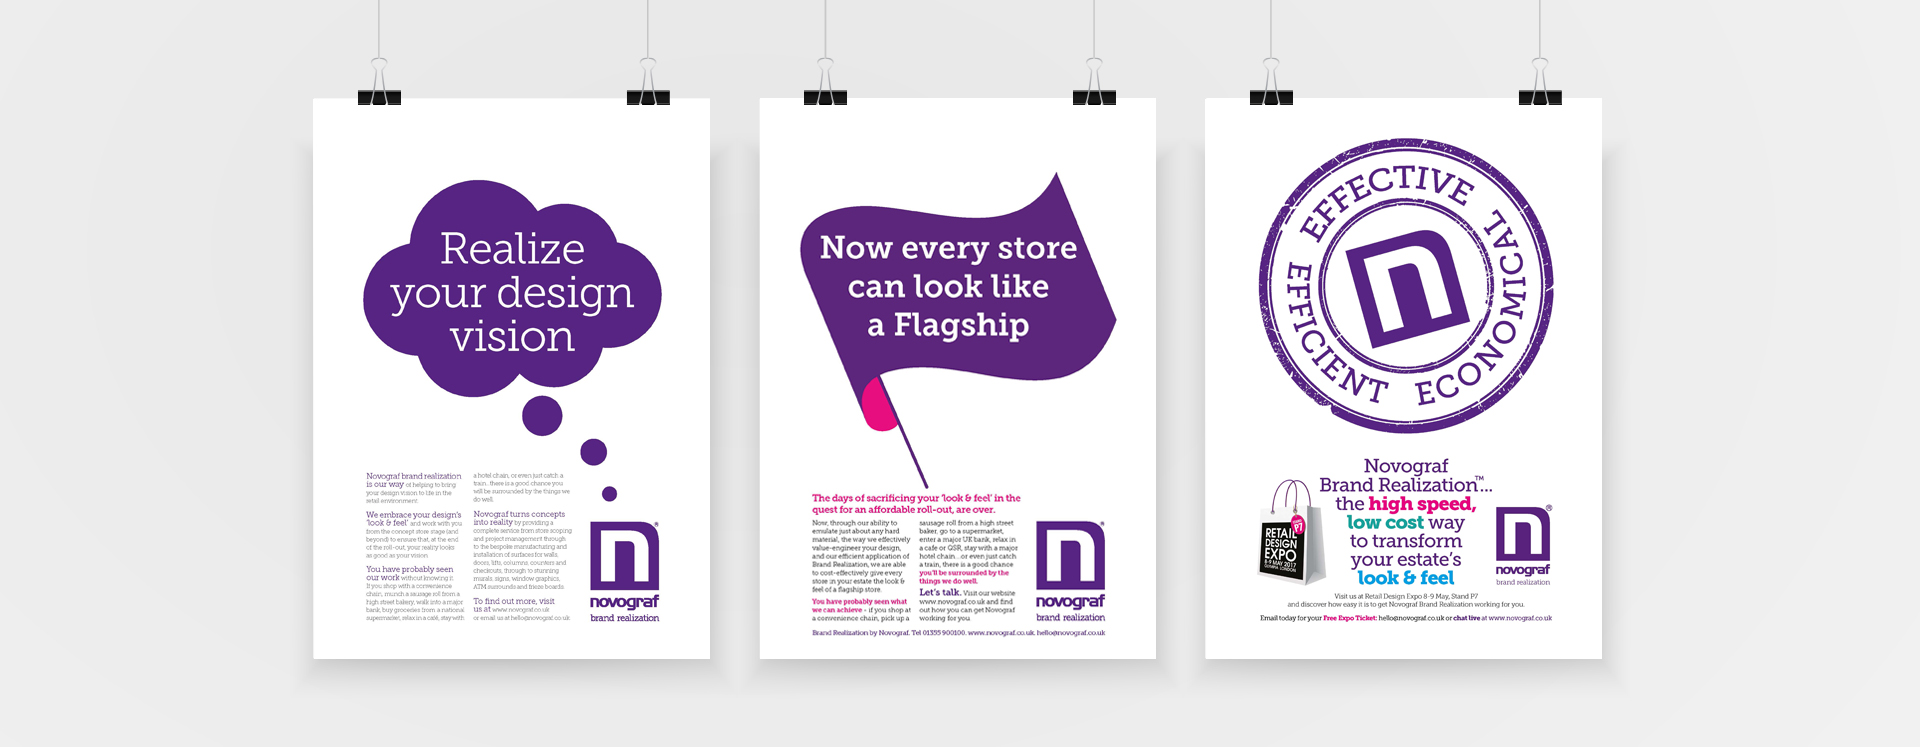 Wee Creative branding and graphic design for retail outlets.